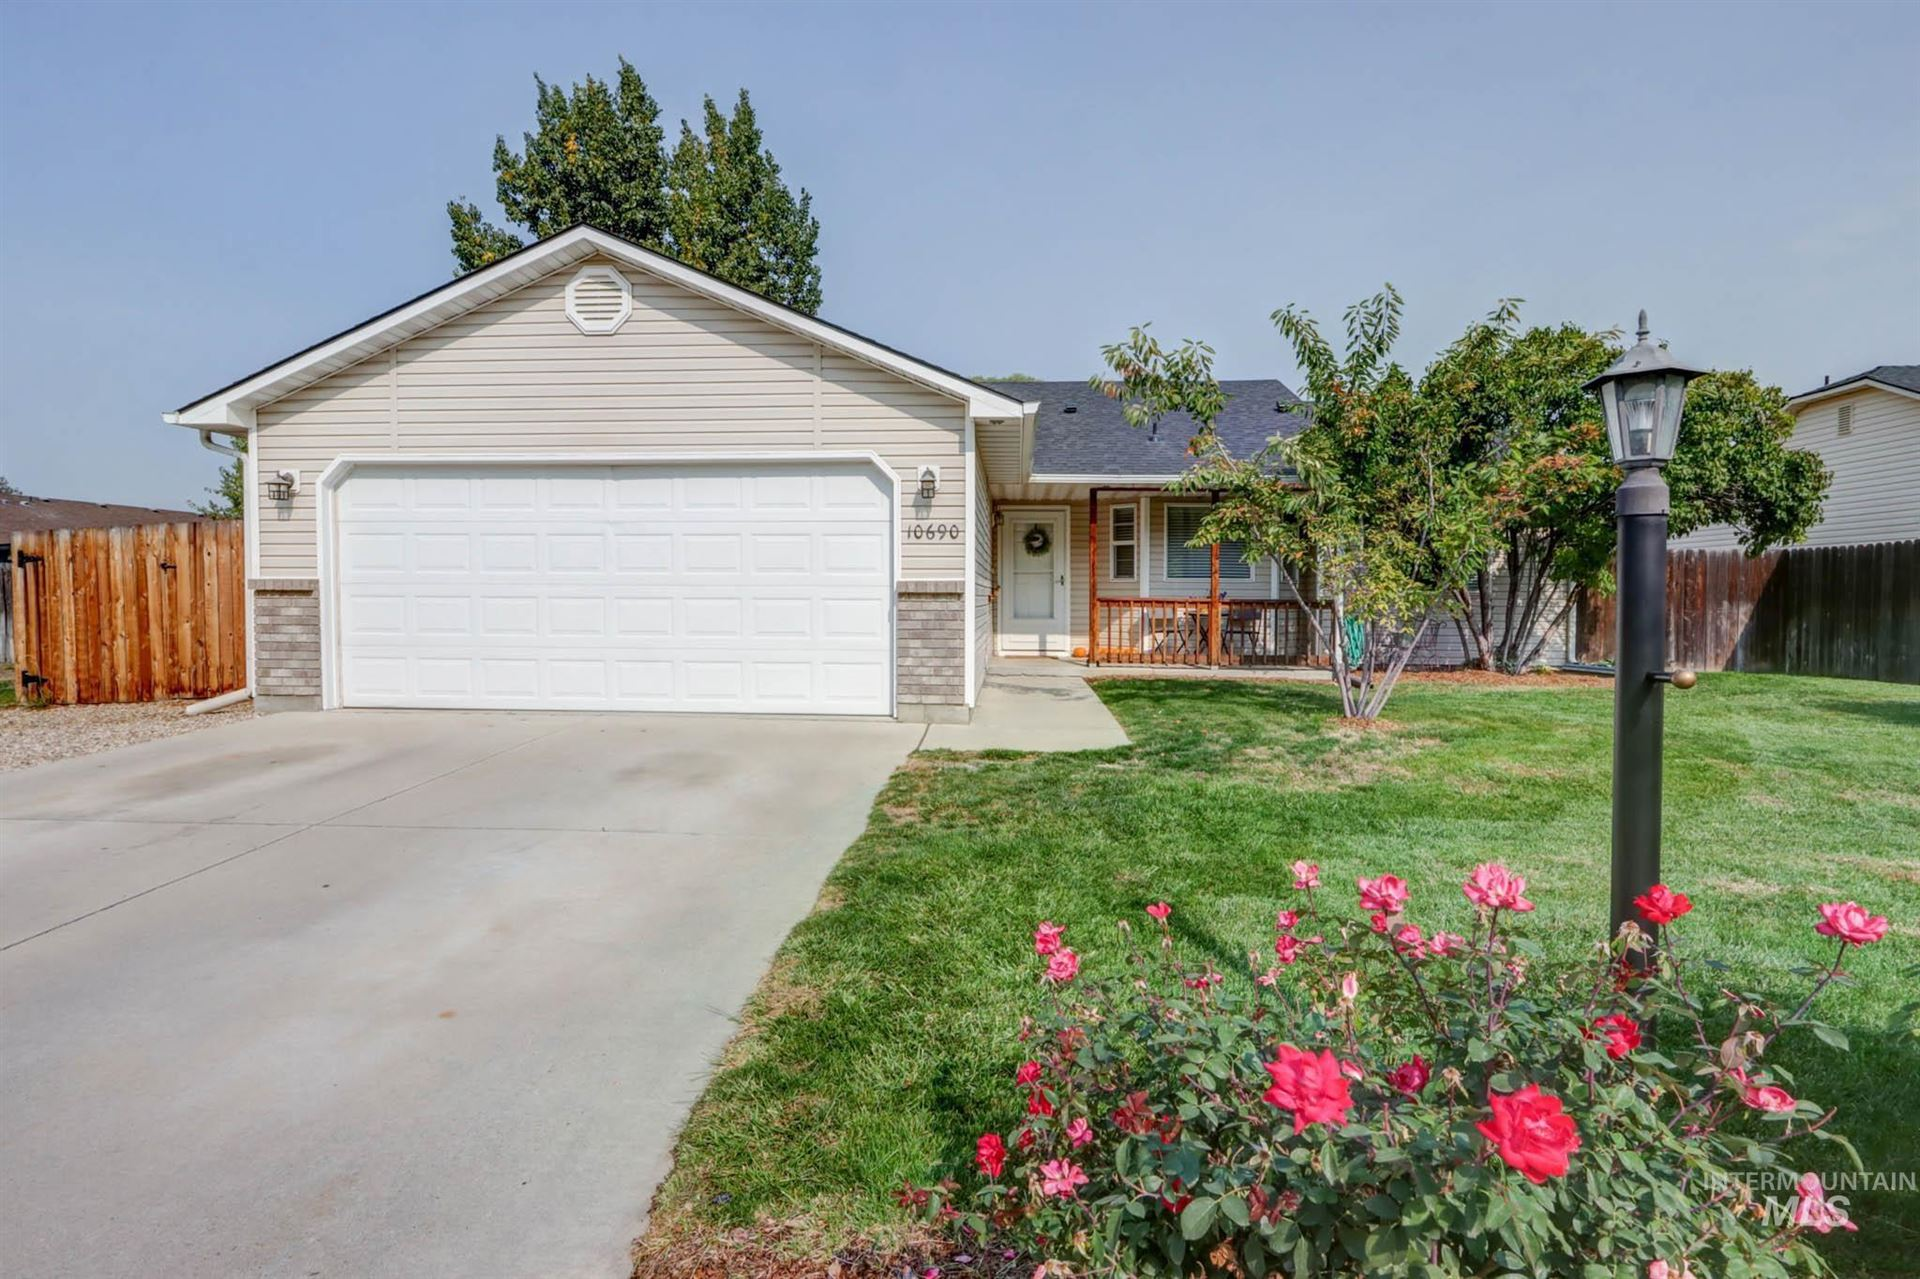 10690 W Altair Dr, Star, ID 83669-5626 - MLS#: 98821776